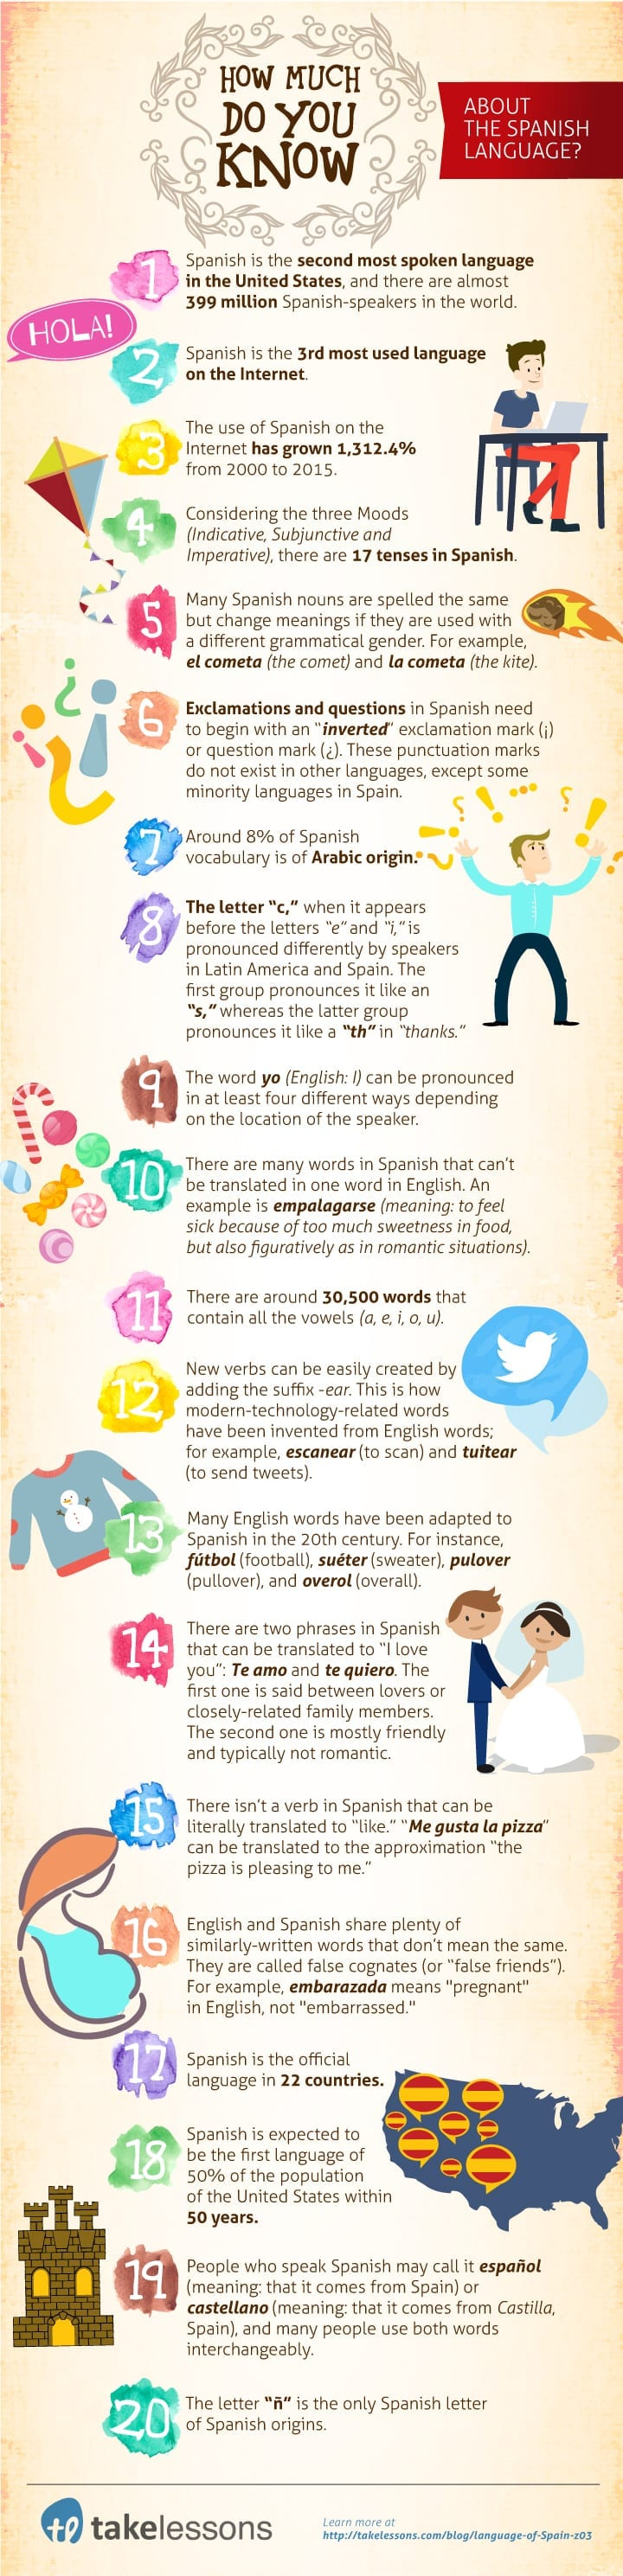 50 fascinating facts about the spanish language infographic